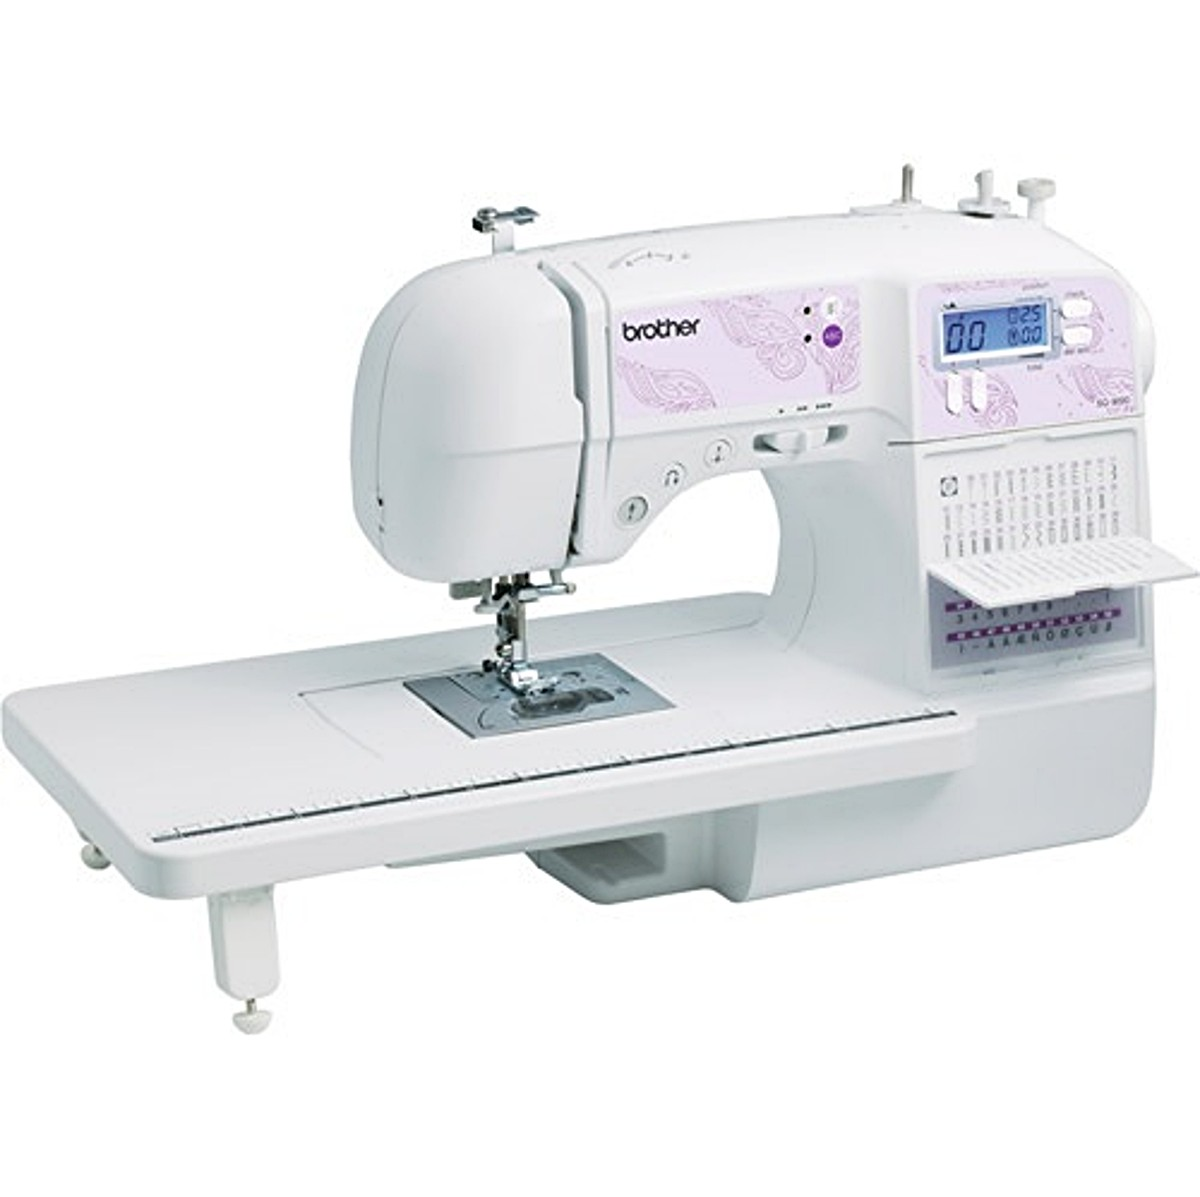 brother sq9000 sewing machine review. Black Bedroom Furniture Sets. Home Design Ideas